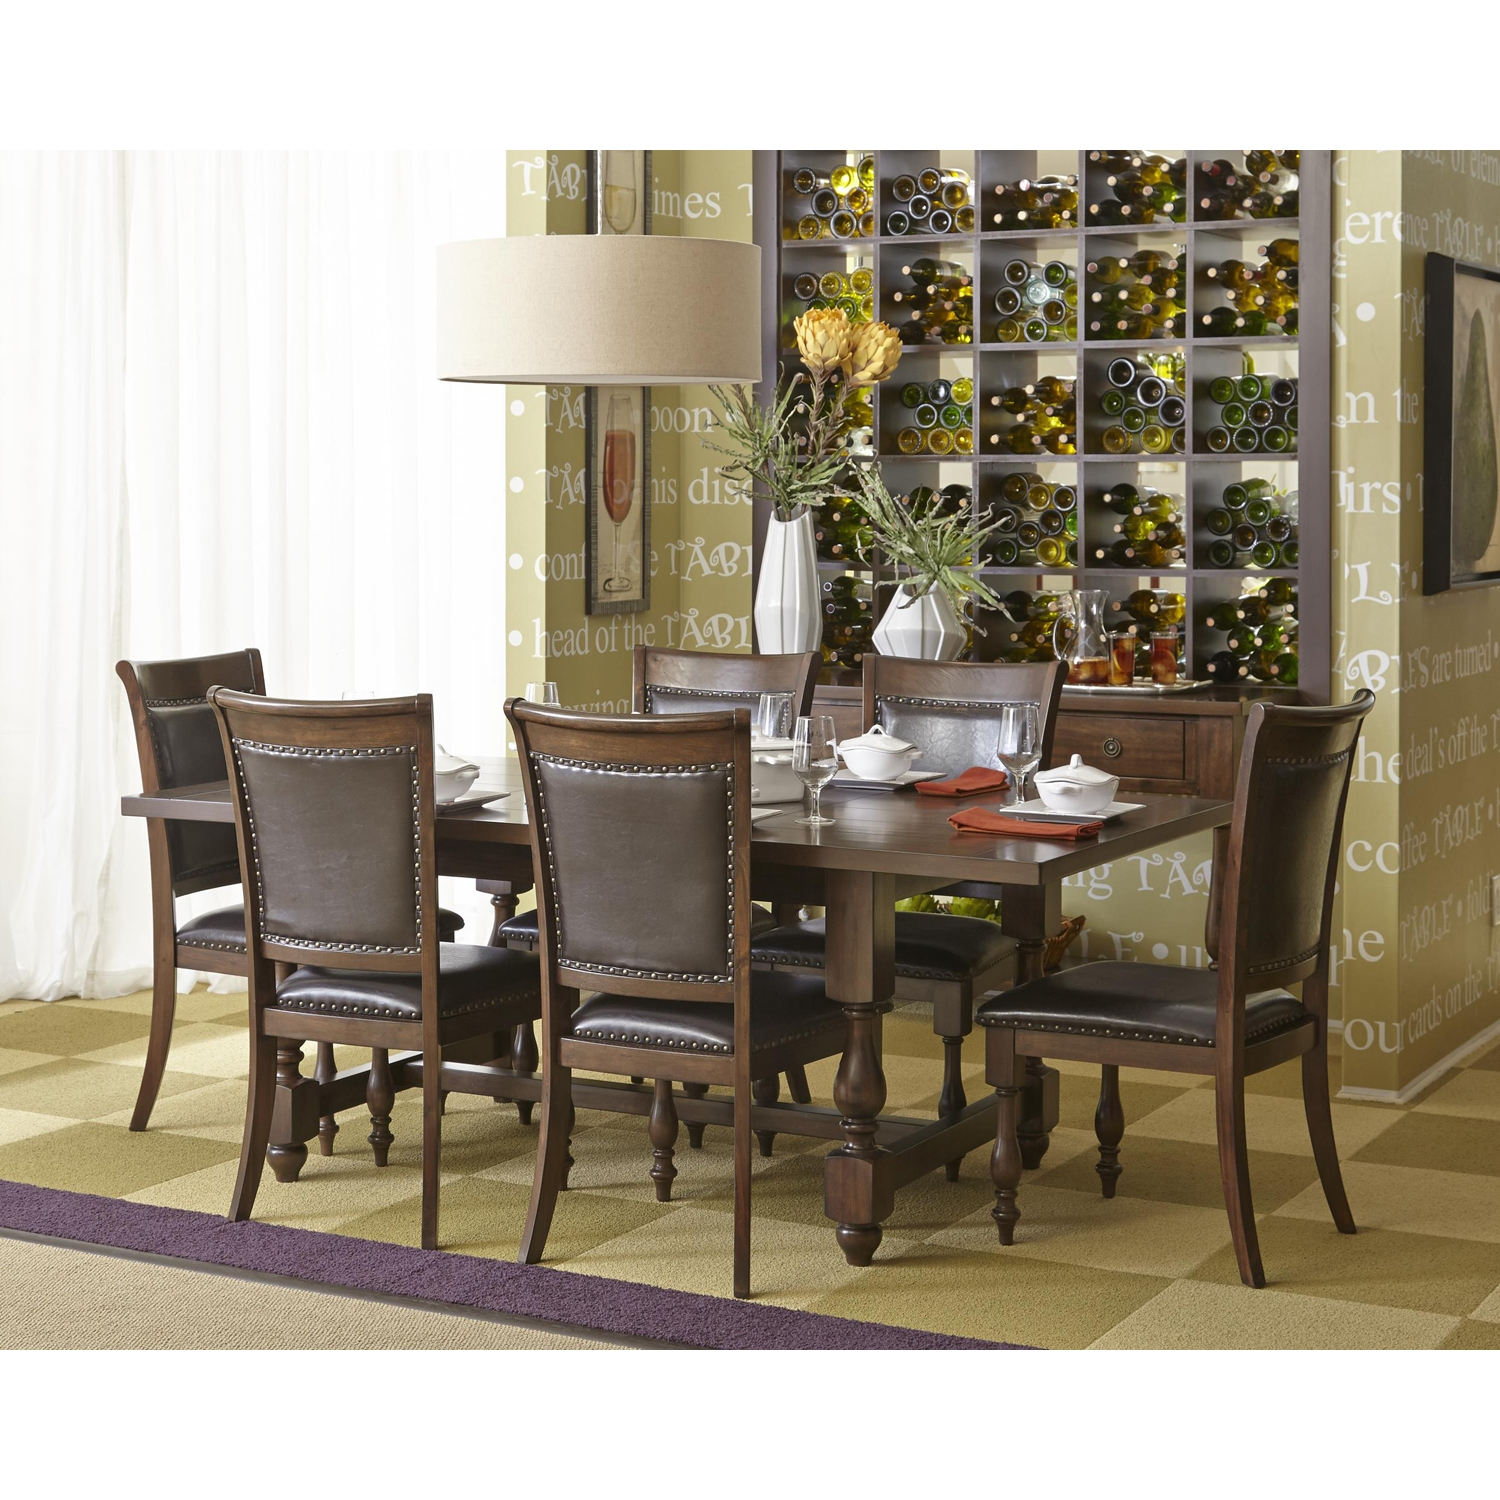 Grand Havana Rectangular Dining Table Rich Tobacco DCG  : 723 78 2 from www.dcgstores.com size 1000 x 1000 jpeg 586kB